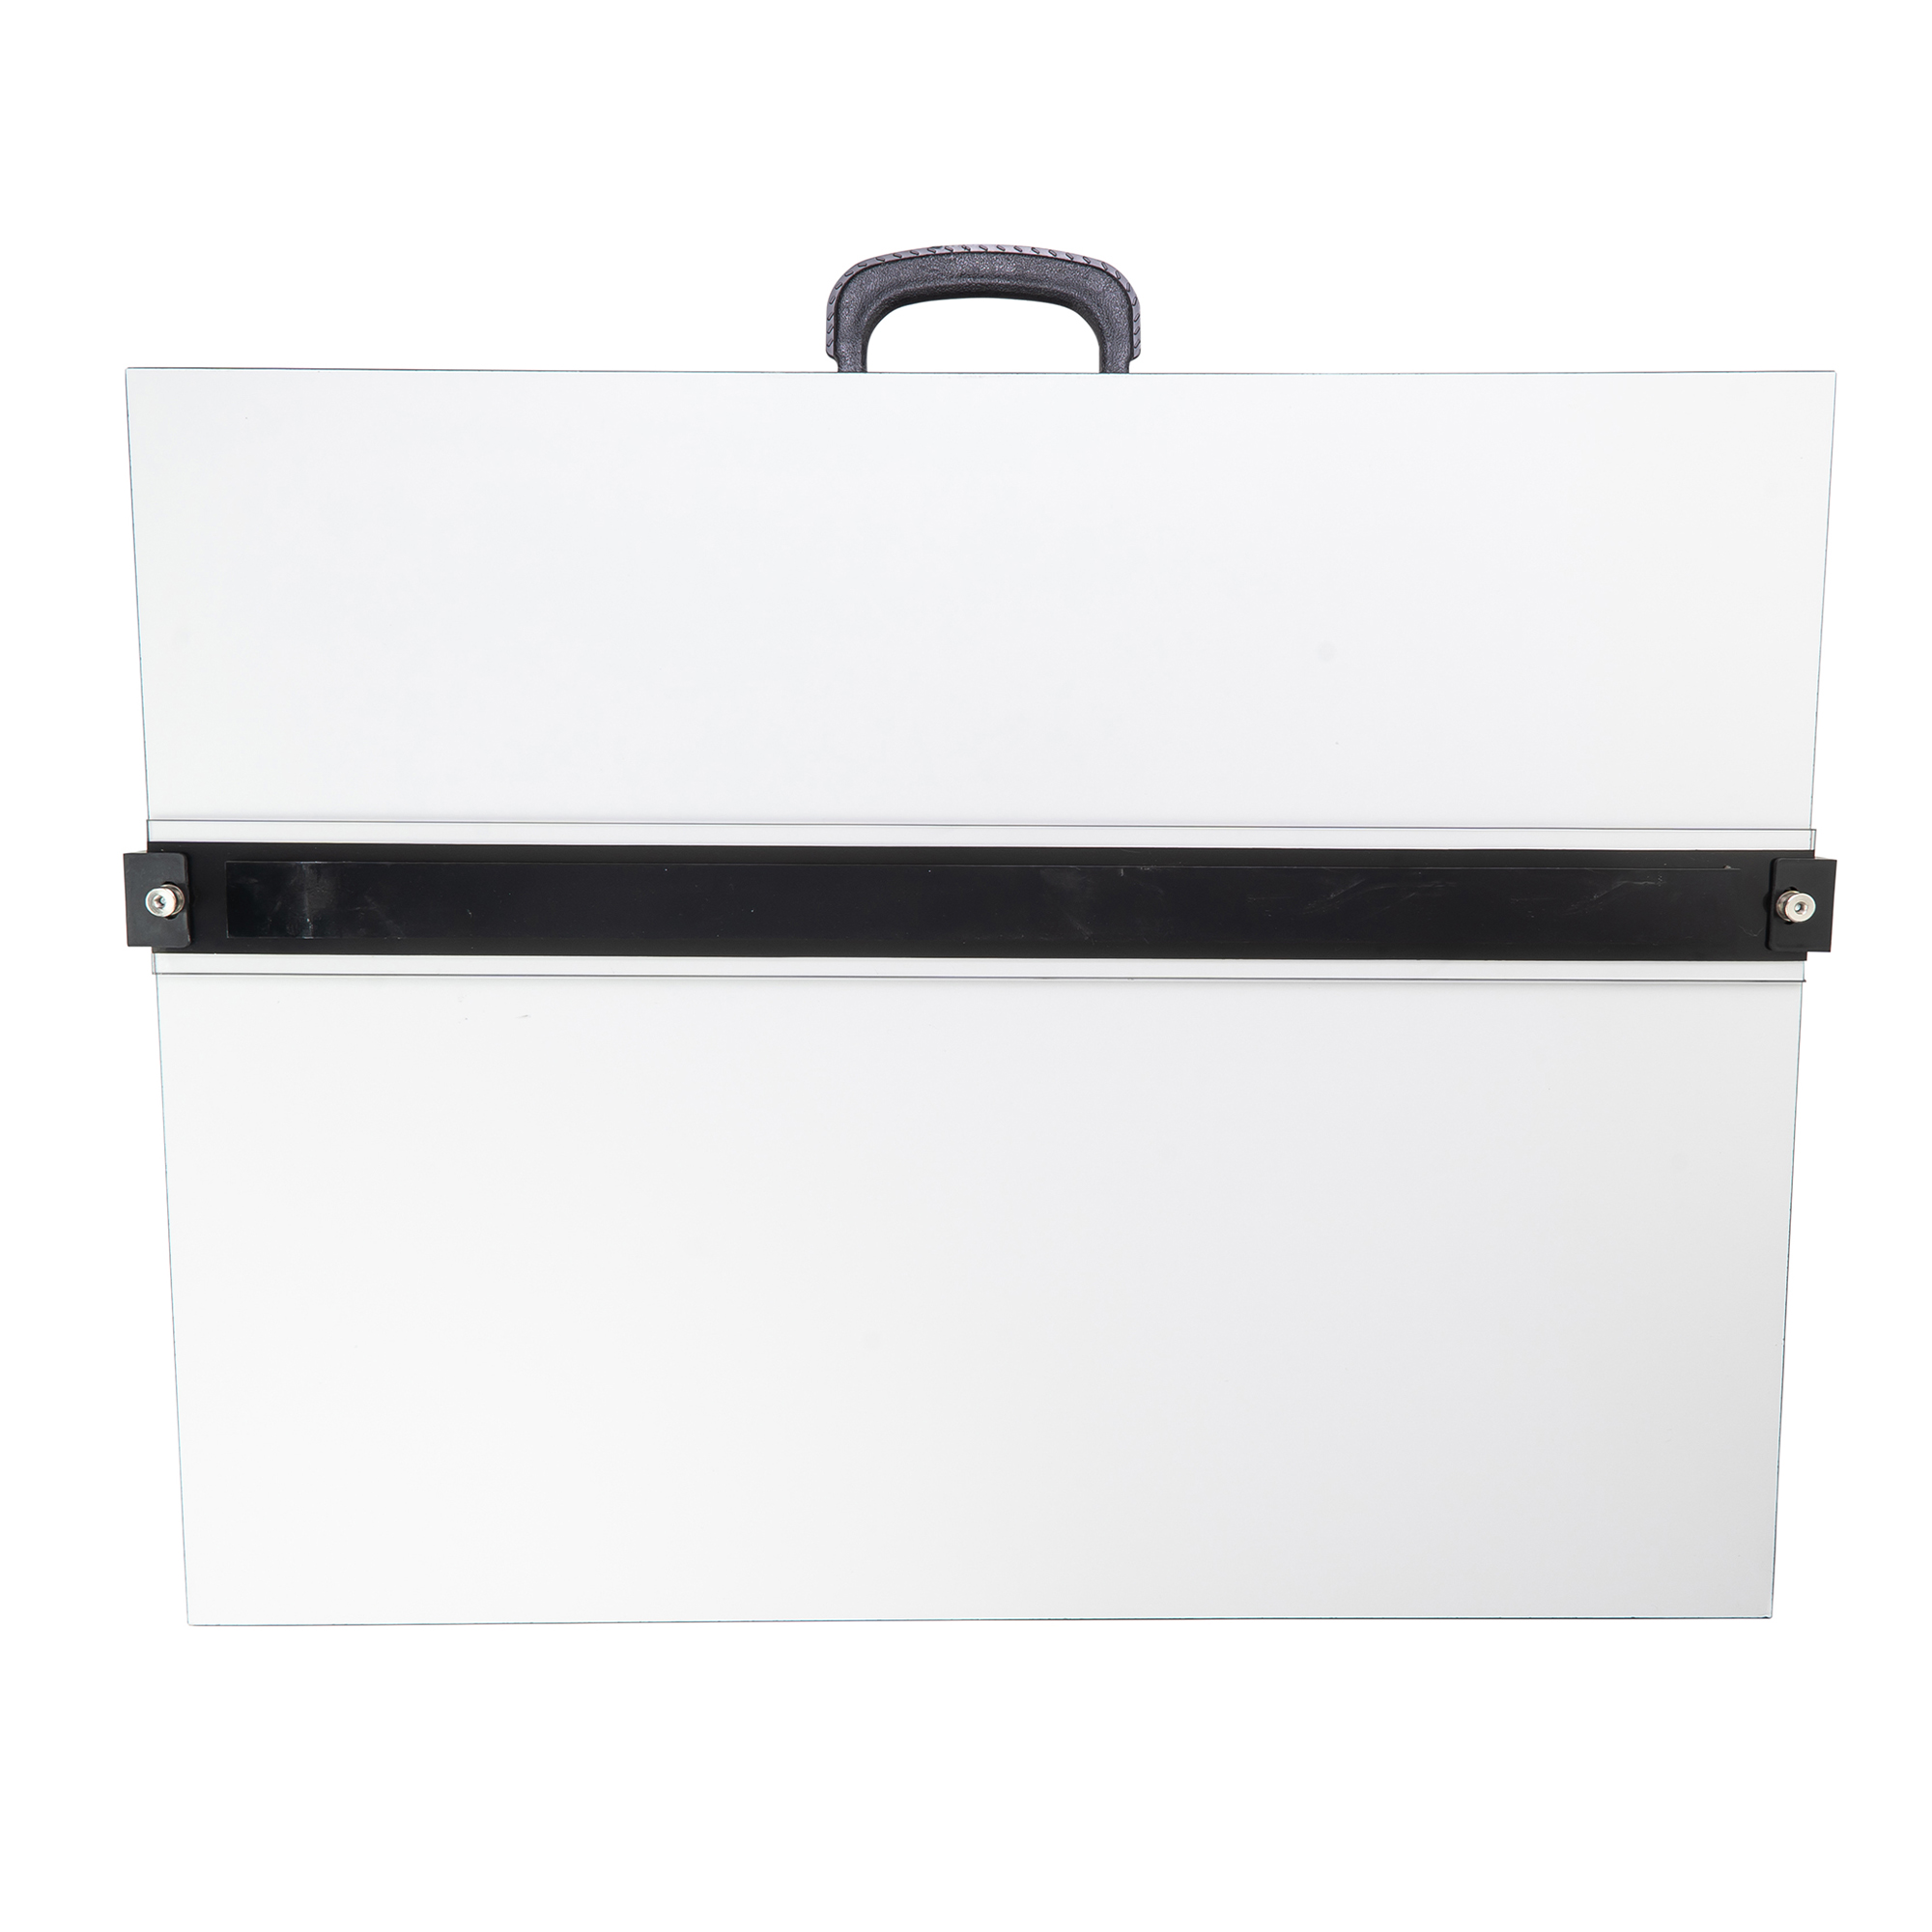 the stb drafting drawing board by pacific arc